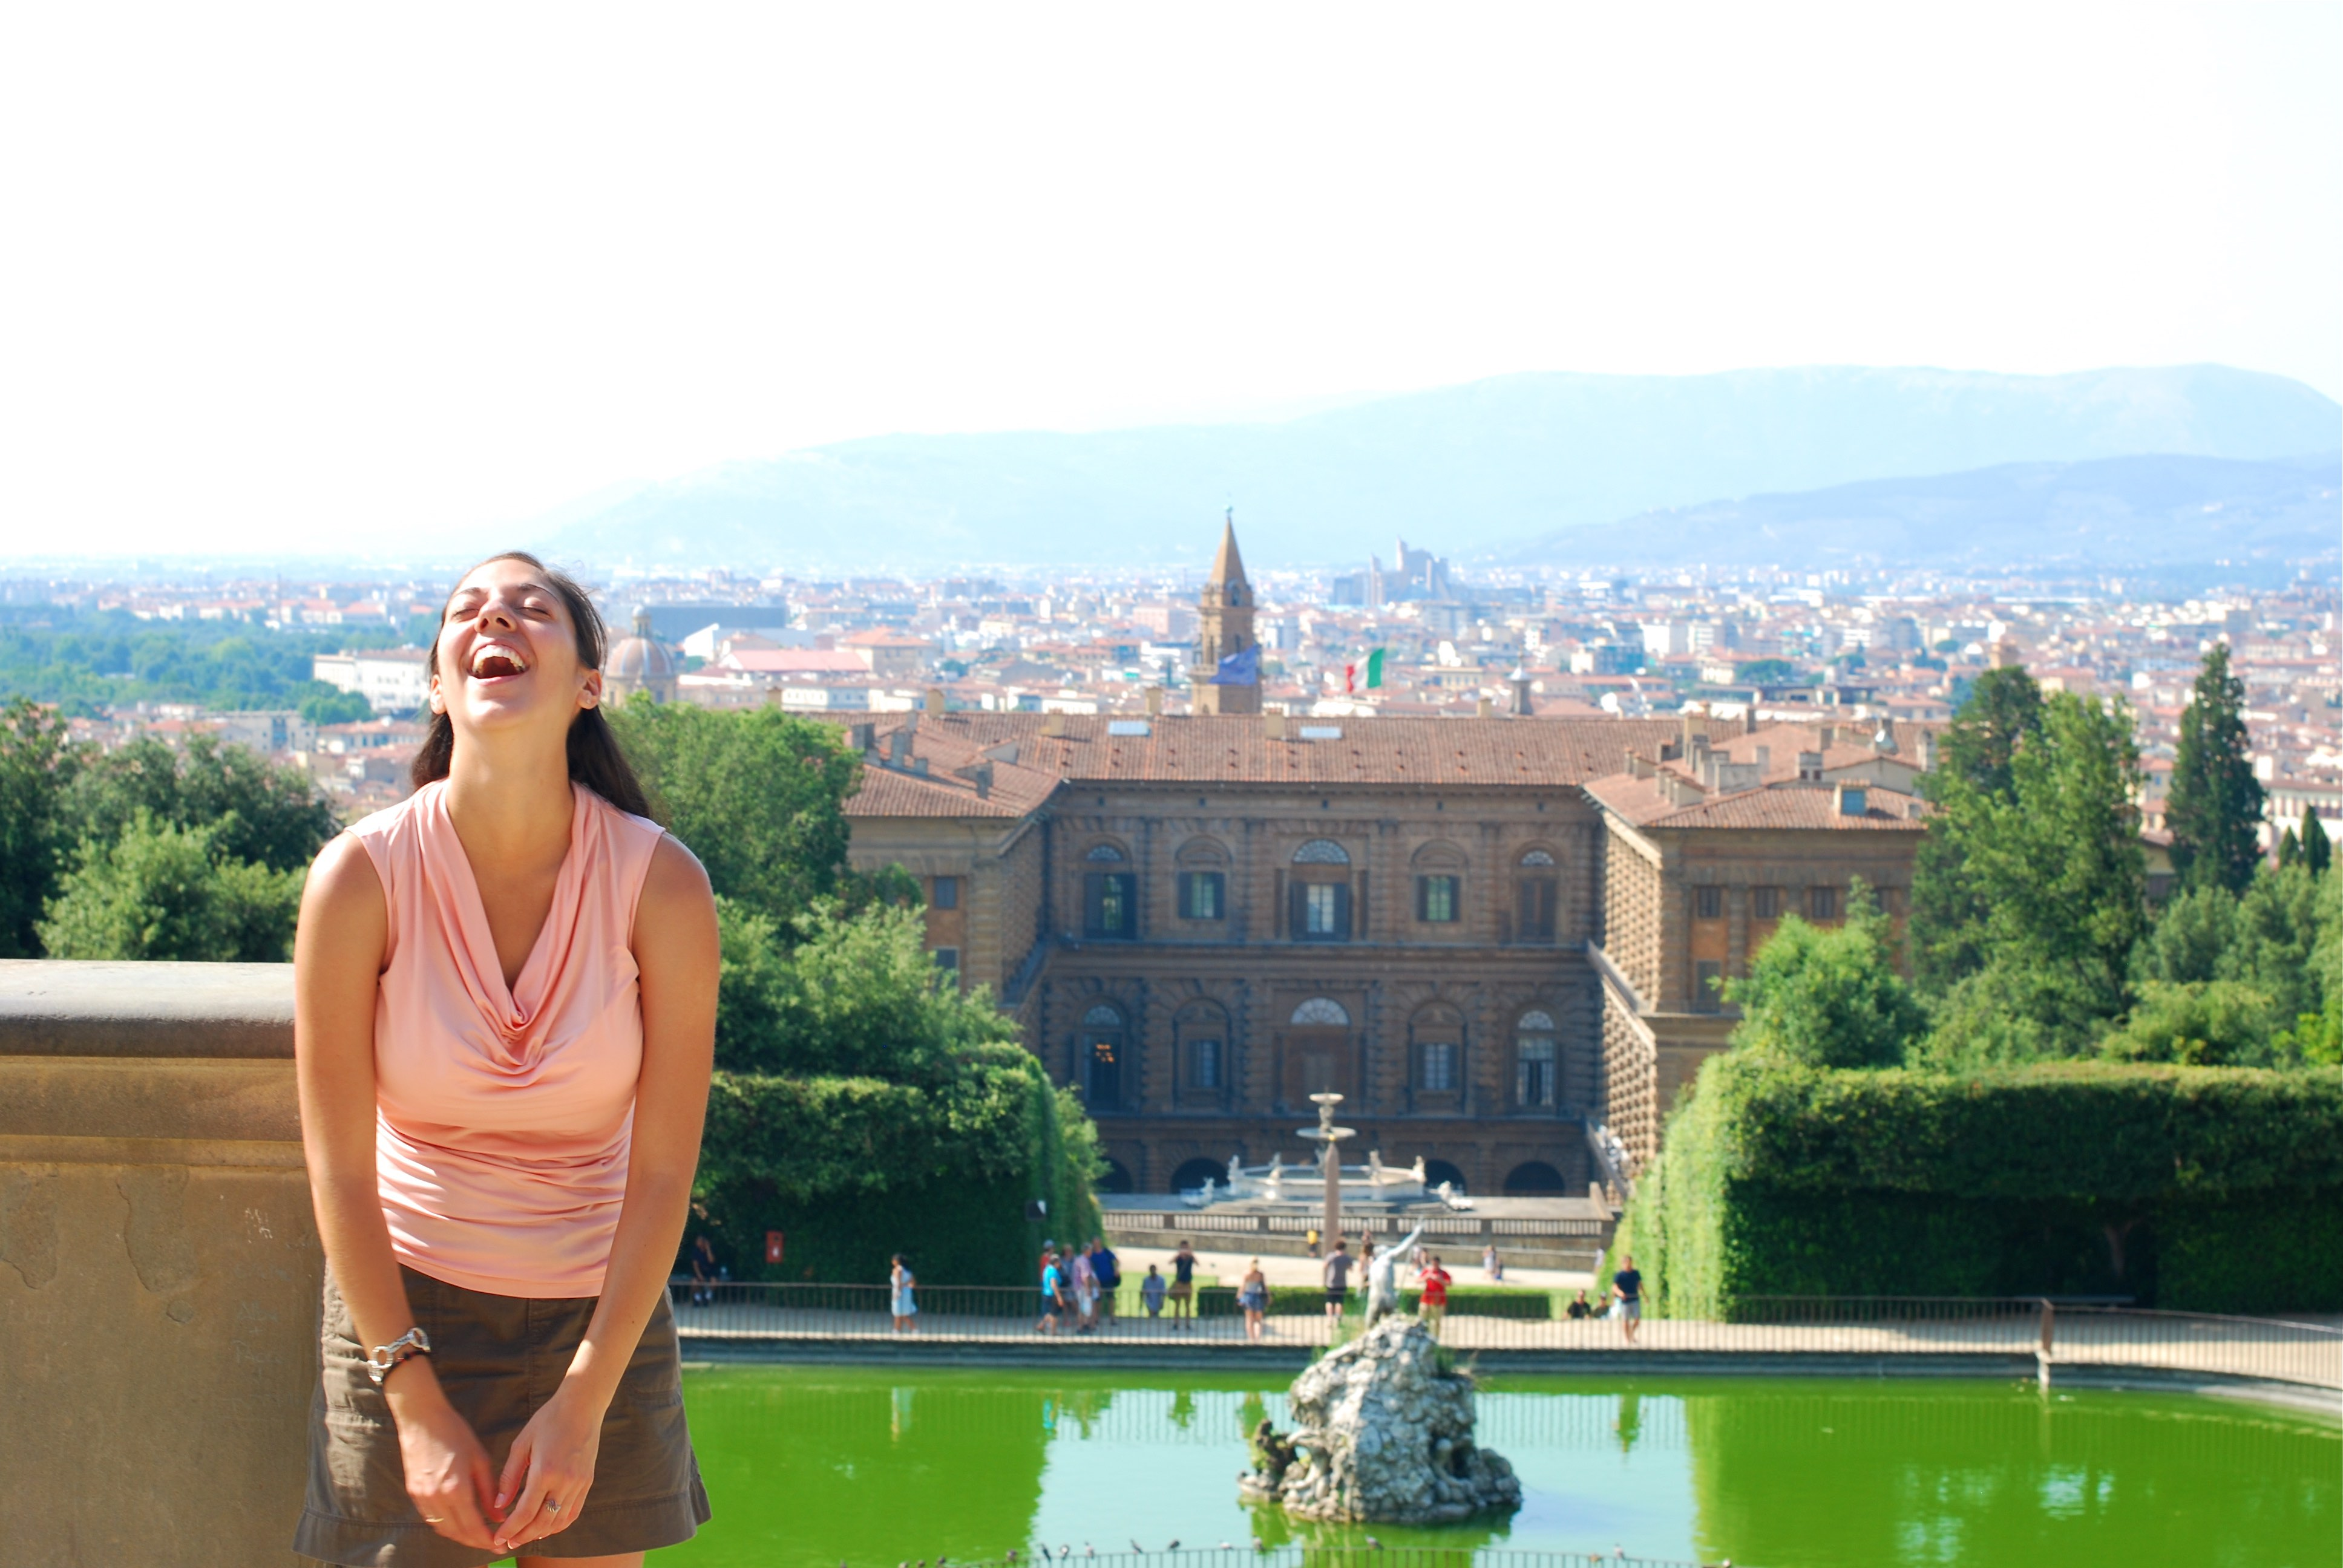 Laughing in Firenze